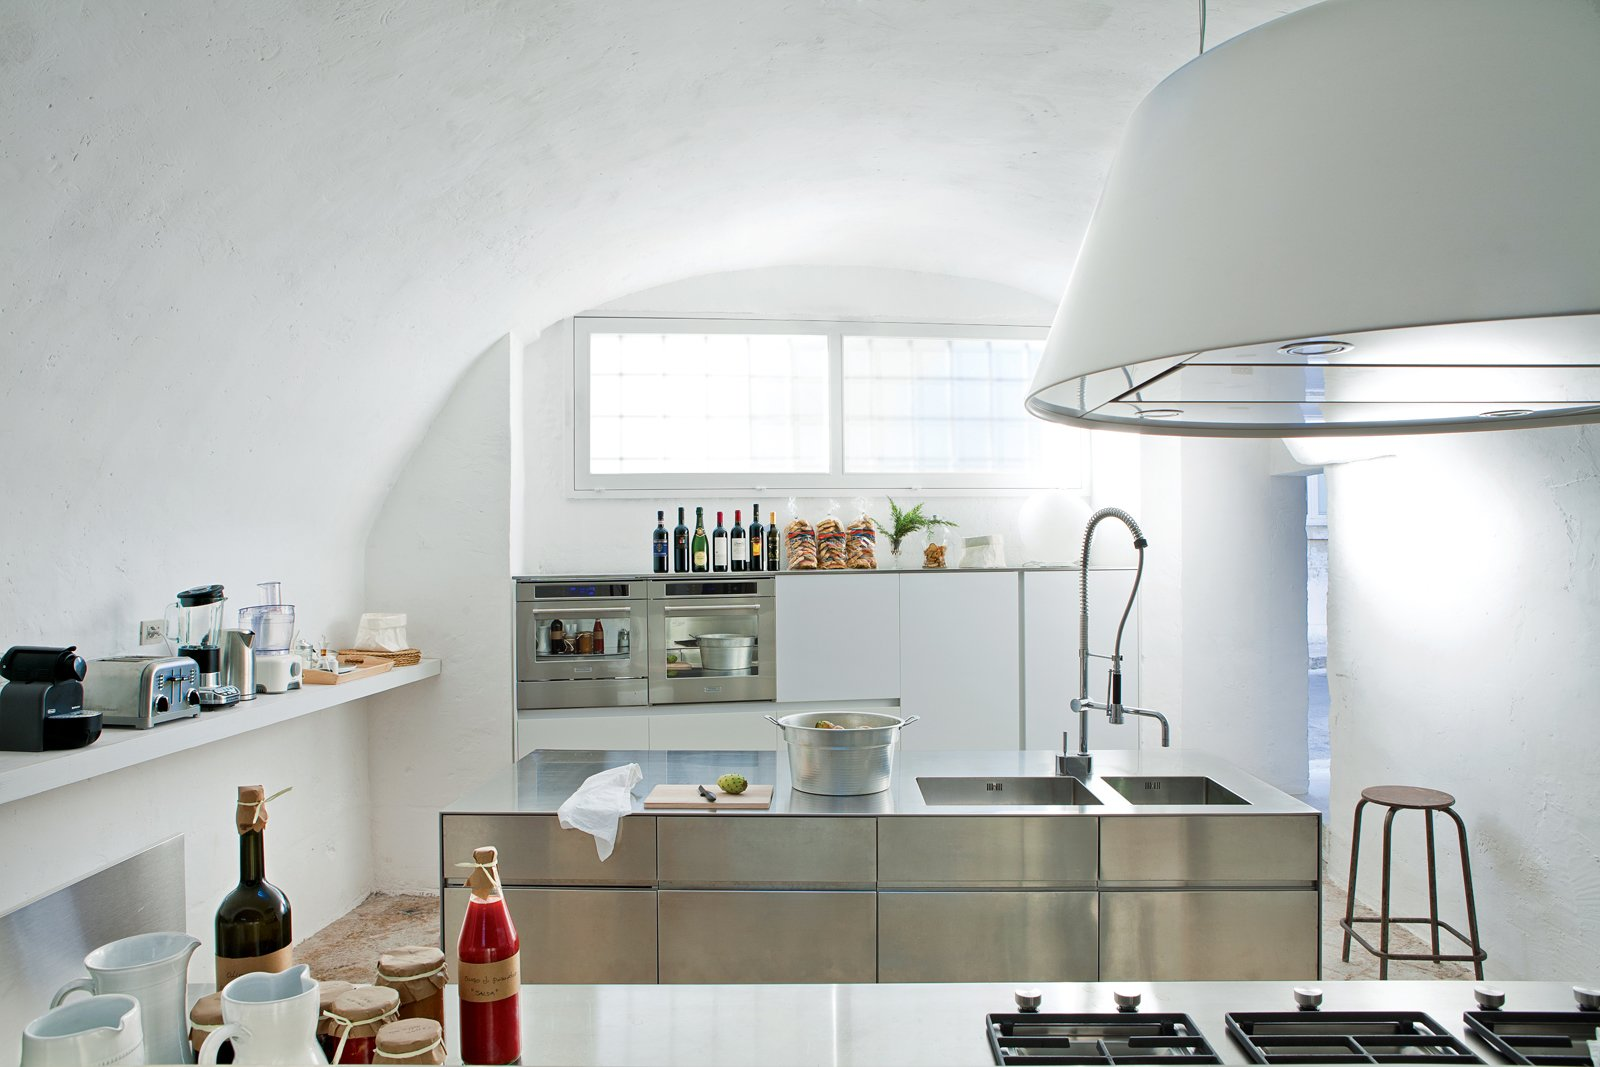 "Kitchen, Metal Counter, Metal Cabinet, Drop In Sink, Range Hood, Wall Oven, Table Lighting, Range, Microwave, Limestone Floor, and White Cabinet The acclaimed Italian designers Ludovica+Roberto Palomba carved a serene retreat out of a 17th-century oil mill in Salento, Italy, filling it with custom creations and their greatest hits. In their minimalist kitchen: sleek steel cabinet systems and the Kono range hood from Elmar. The multi-functional stainless steel island measures 20"" deep and was designed by the couple for Elmar.  Photo 7 of 8 in Modern Meets Ancient in a Renovated Italian Vacation Home"